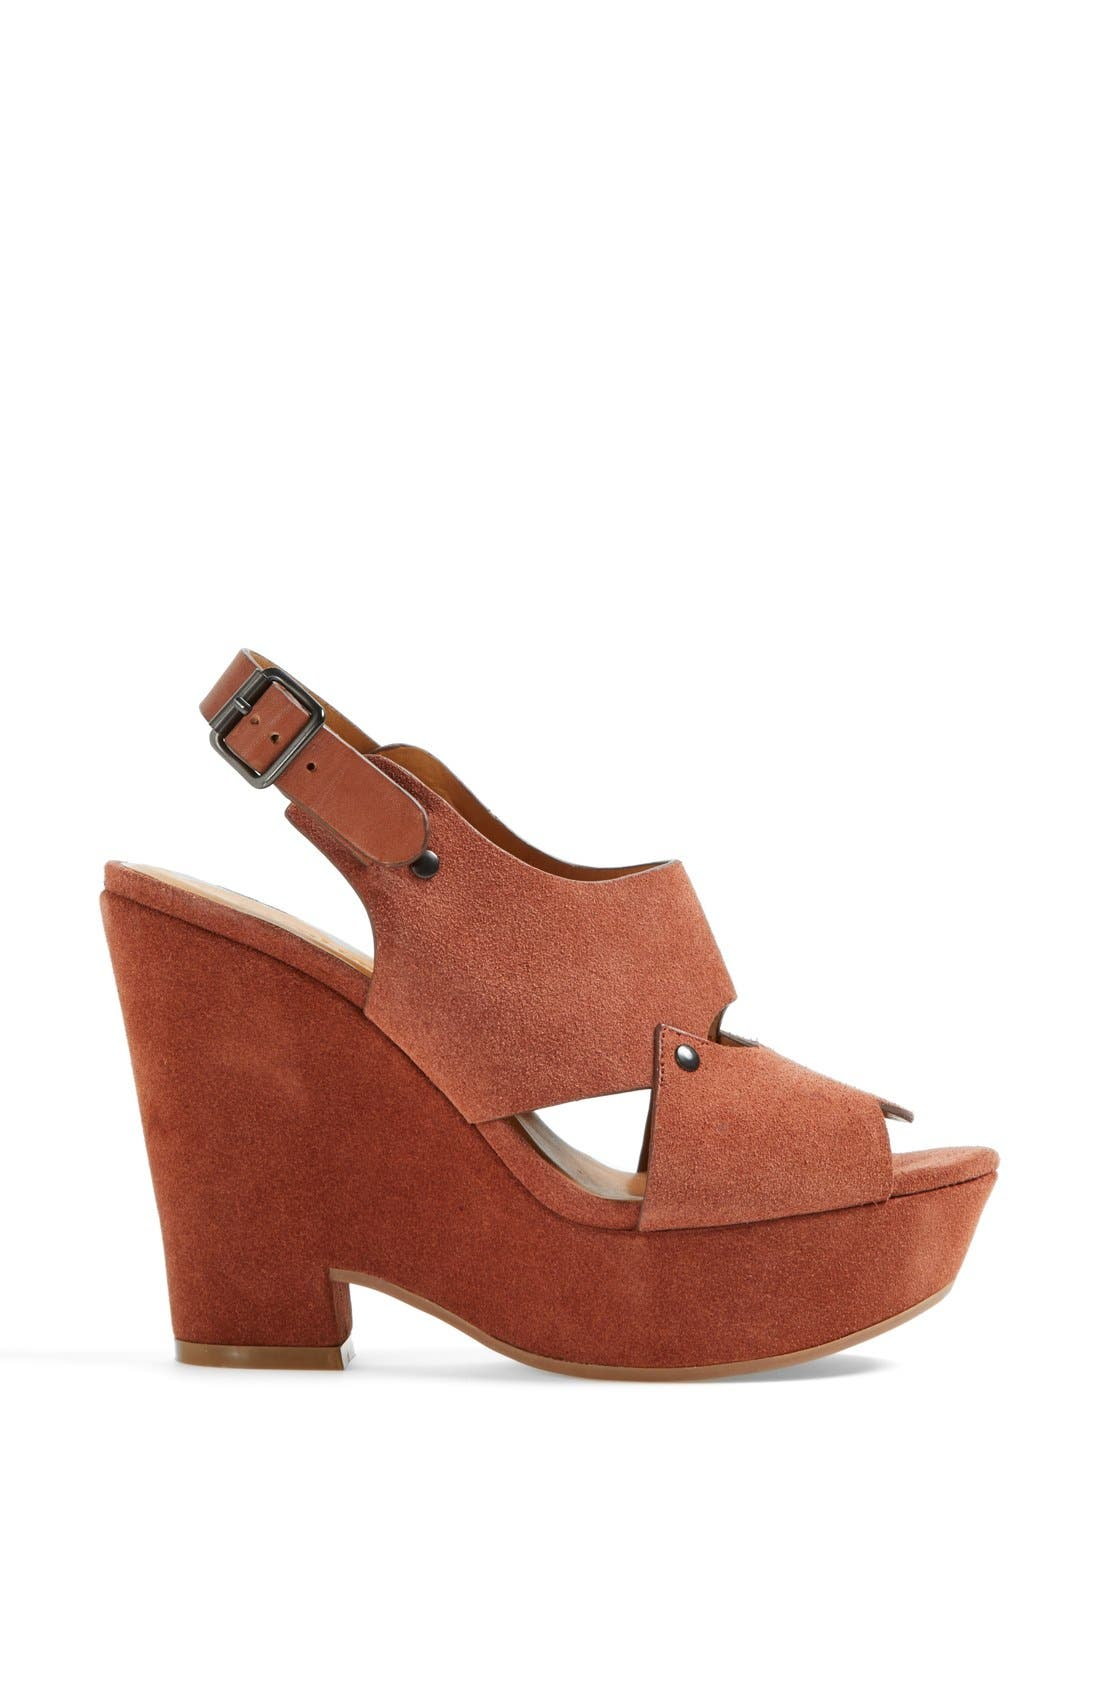 Alternate Image 3  - See by Chloé 'Eva' Cutout Slingback Wedge Sandal